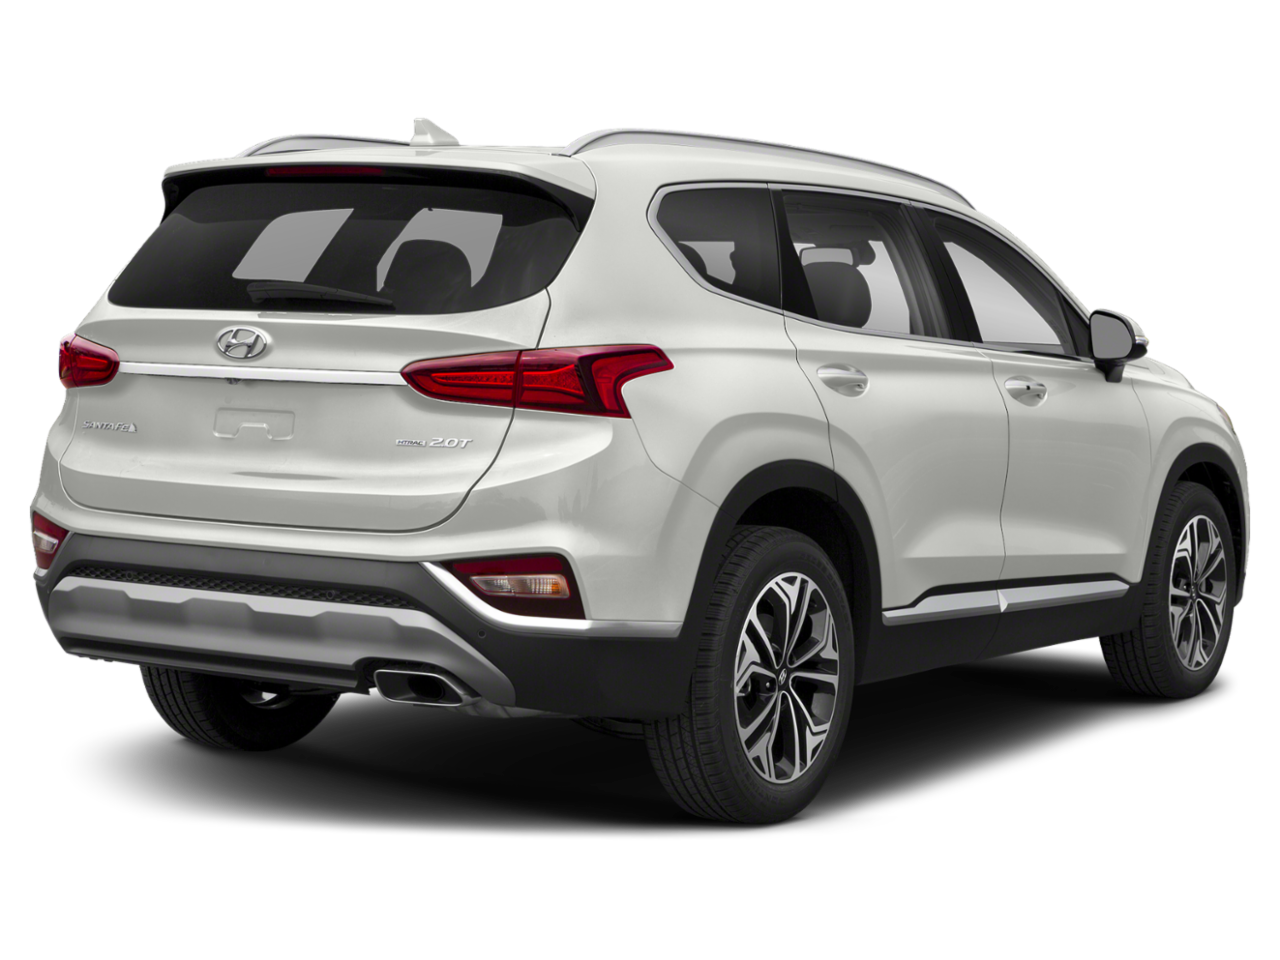 2020 Hyundai Santa Fe Limited With Navigation & AWD